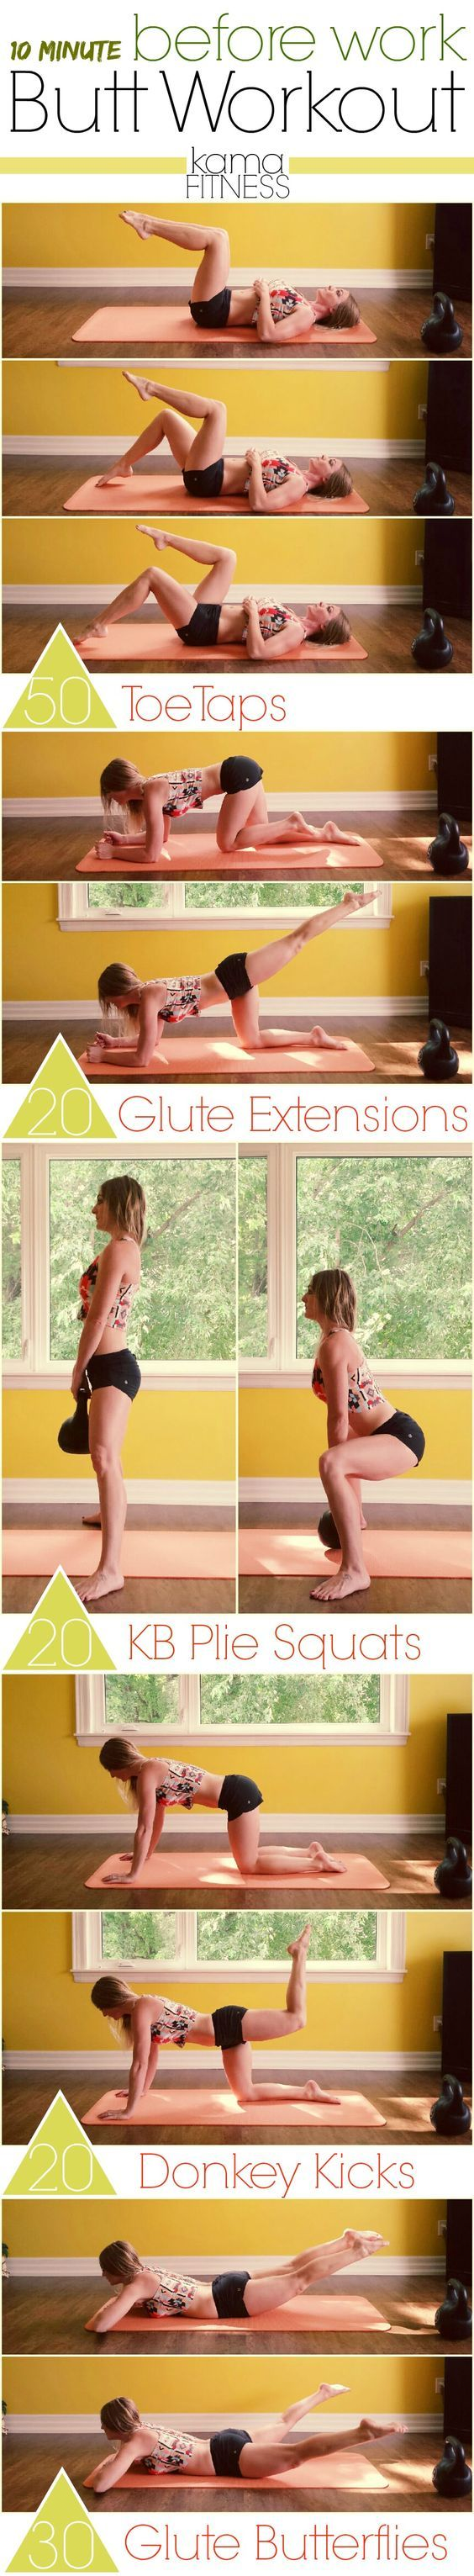 10 Minute, Before Work, Butt Workout that everyone has time for!! We're helping thousands of Ladies (Just like You) Get Fit & Sexy ..: